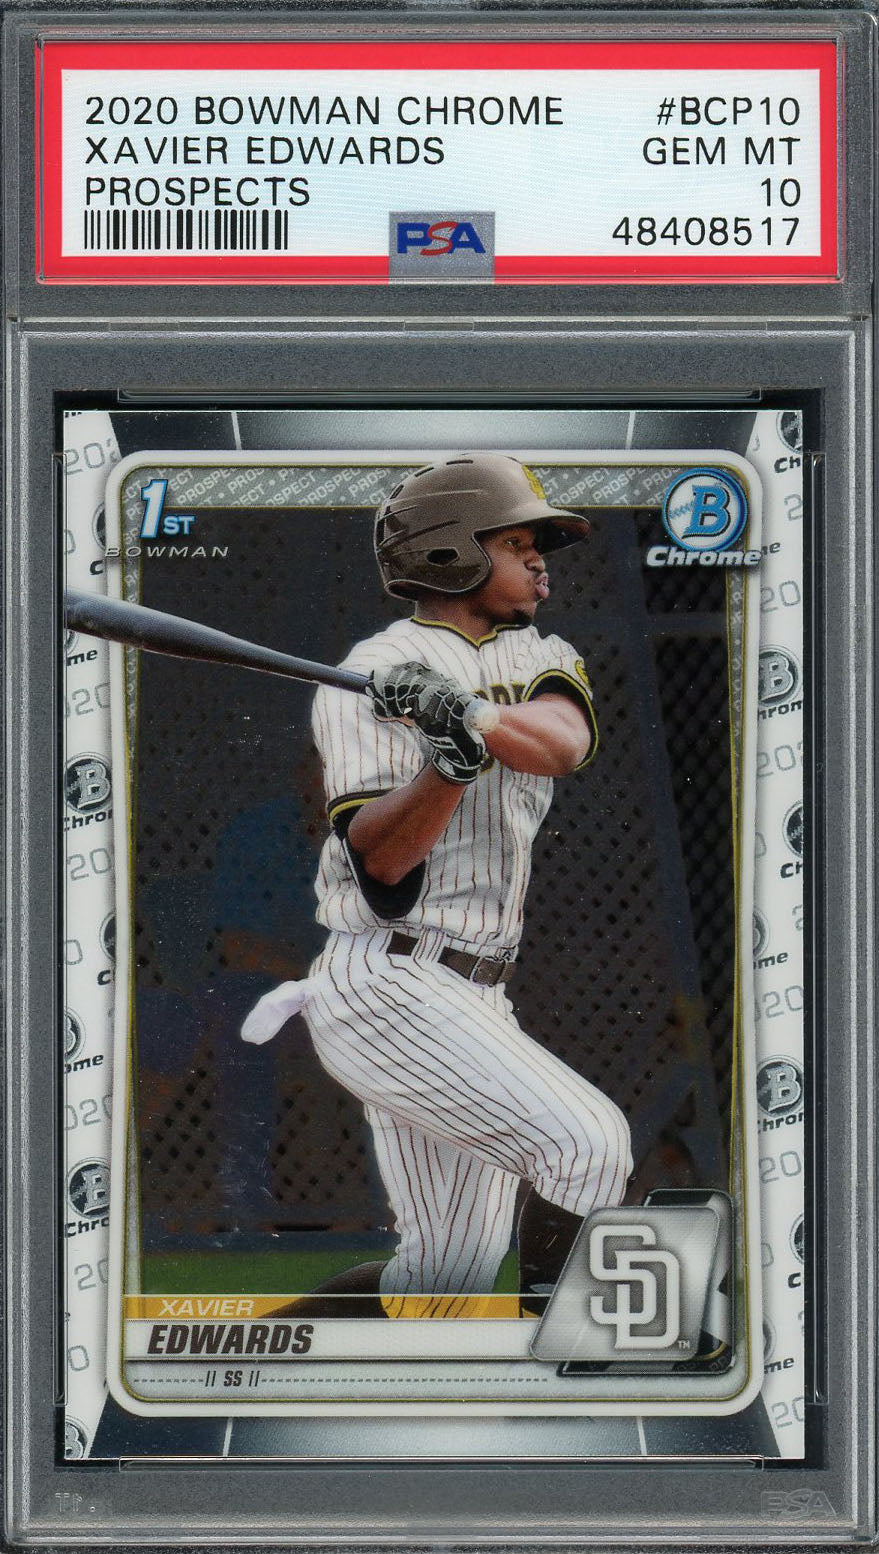 Xavier Edwards San Diego Padres 2020 Bowman Chrome Prospects Rookie Baseball Card #BCP10 Graded PSA 10 GEM MINT-Powers Sports Memorabilia